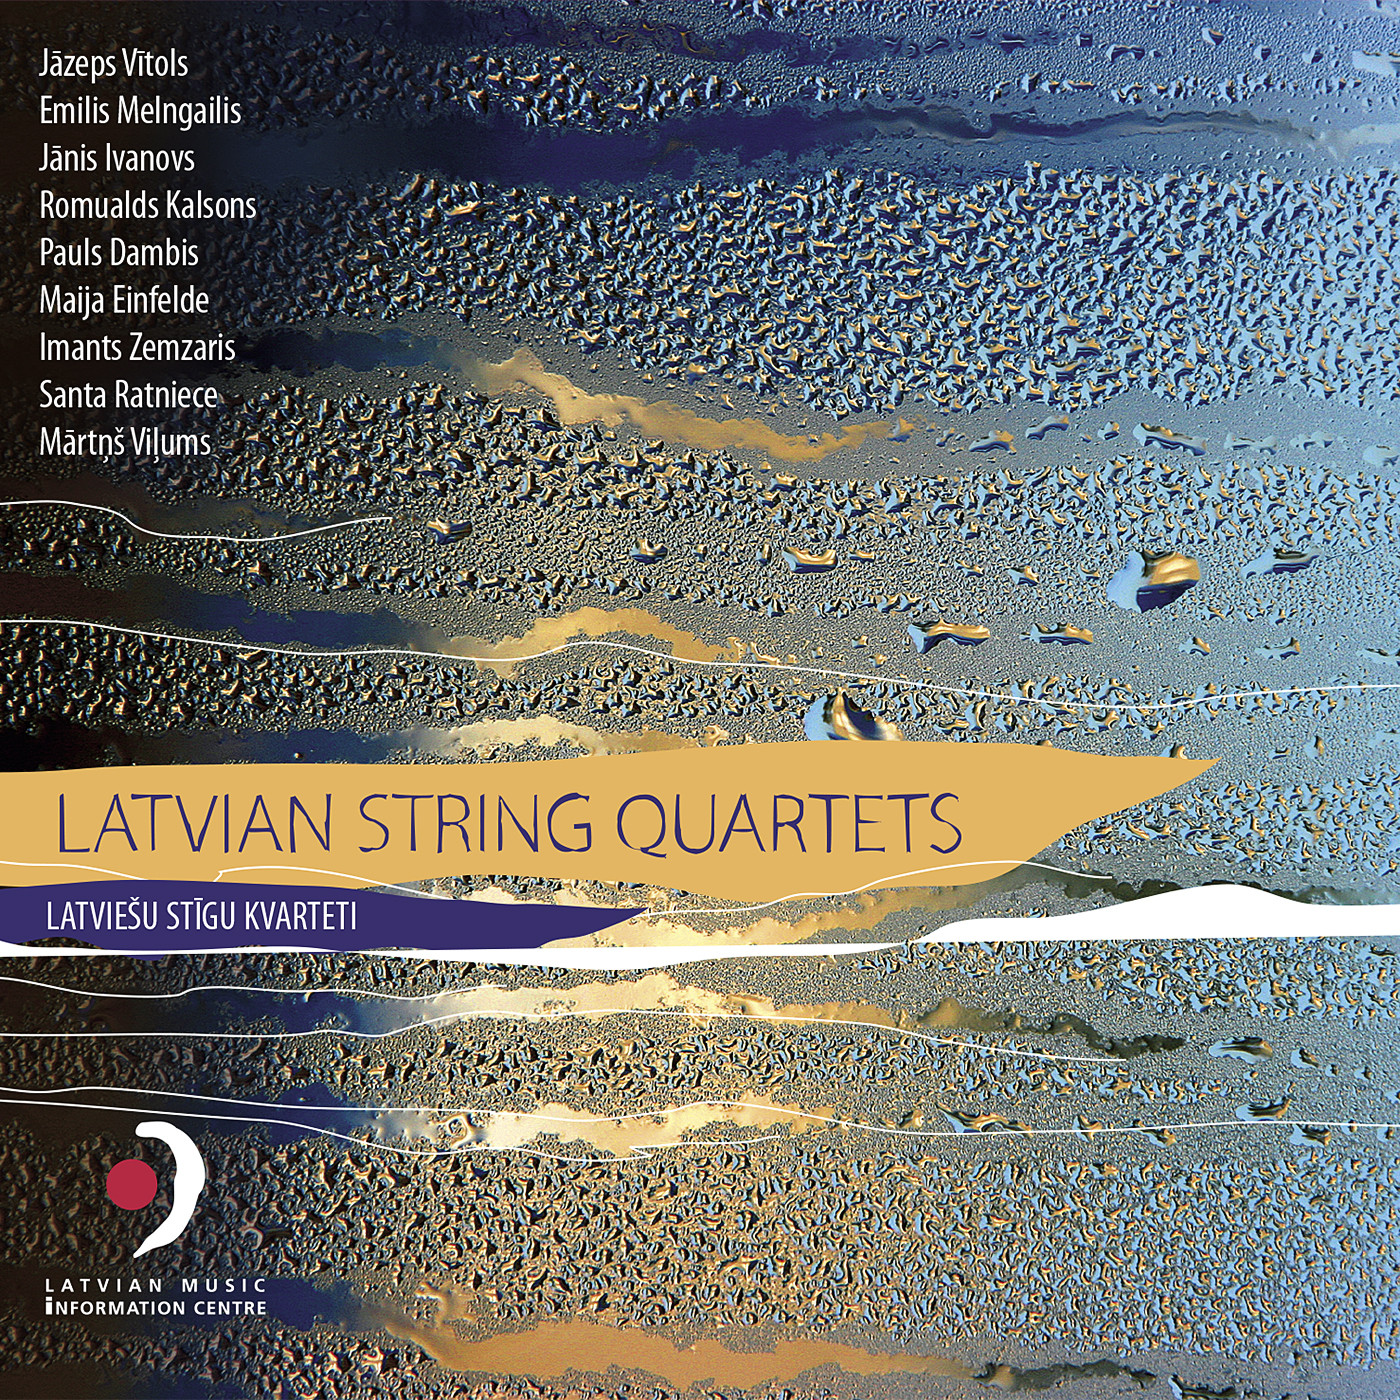 Latvian String Quartets